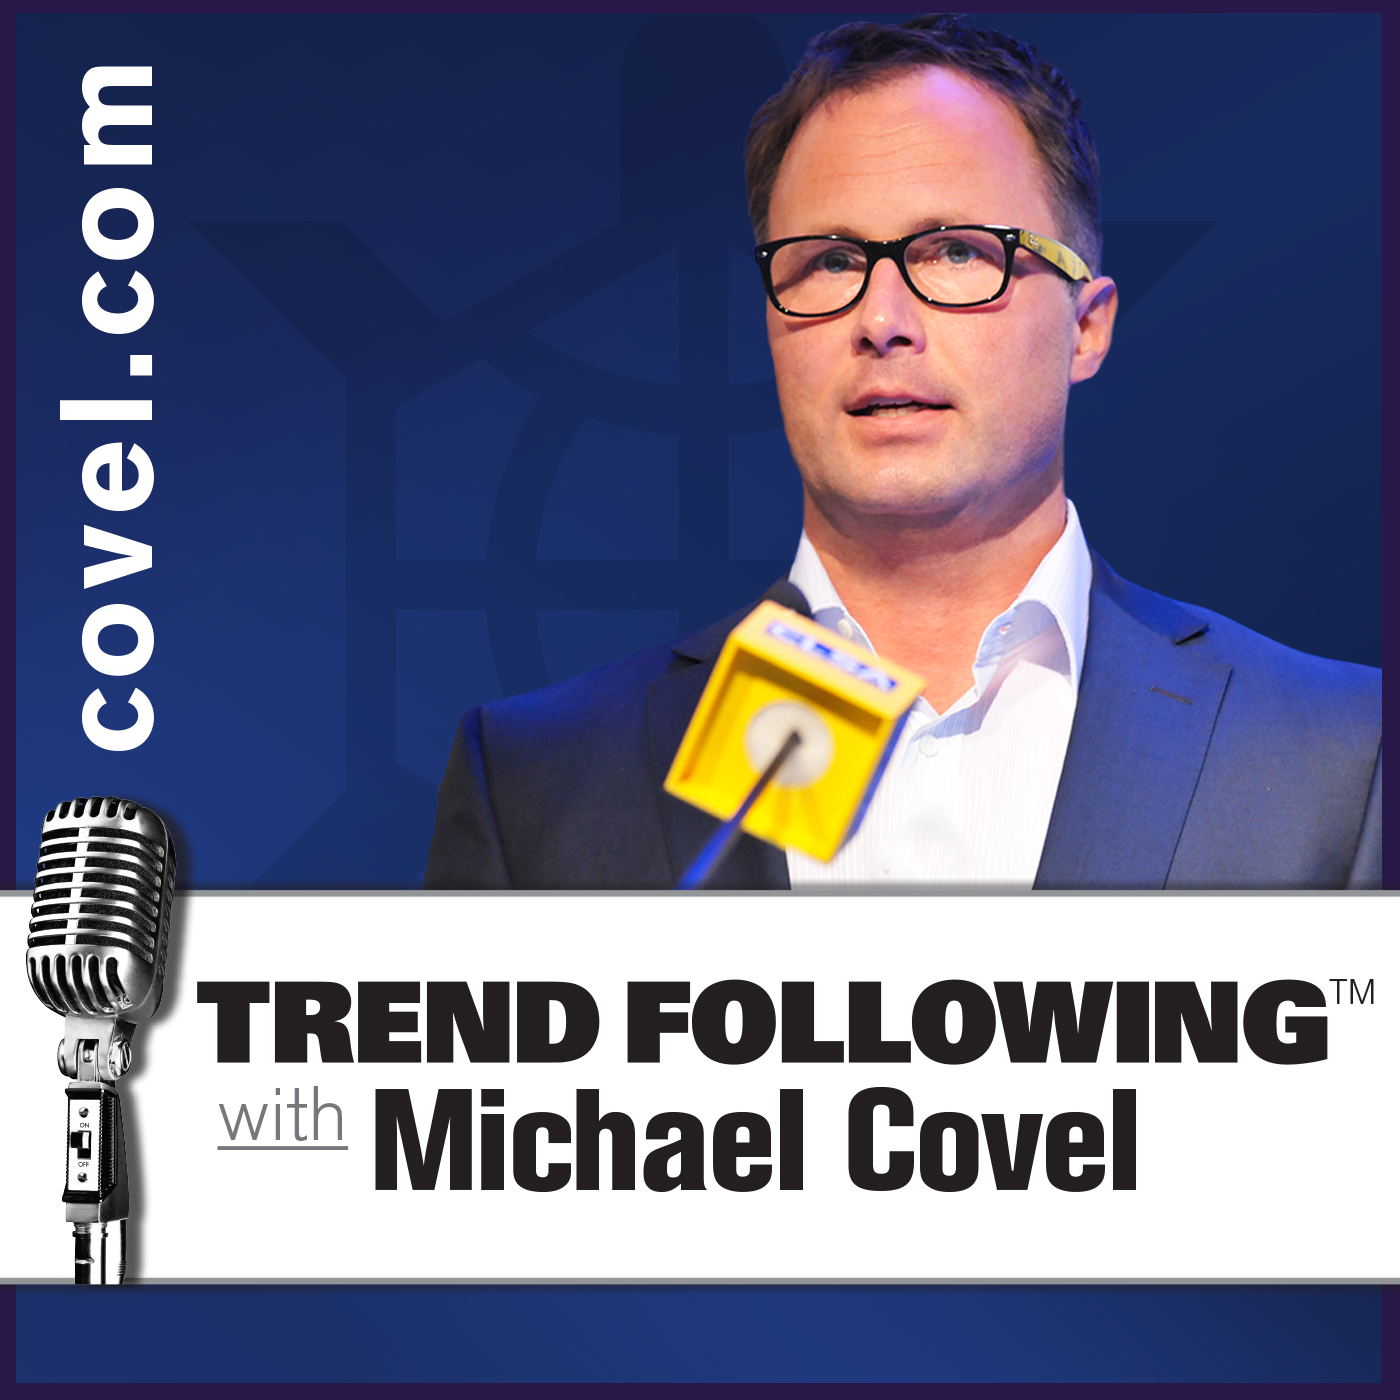 Ep. 492: TurtleTrader Plus Lemmy with Michael Covel on Trend Following Radio